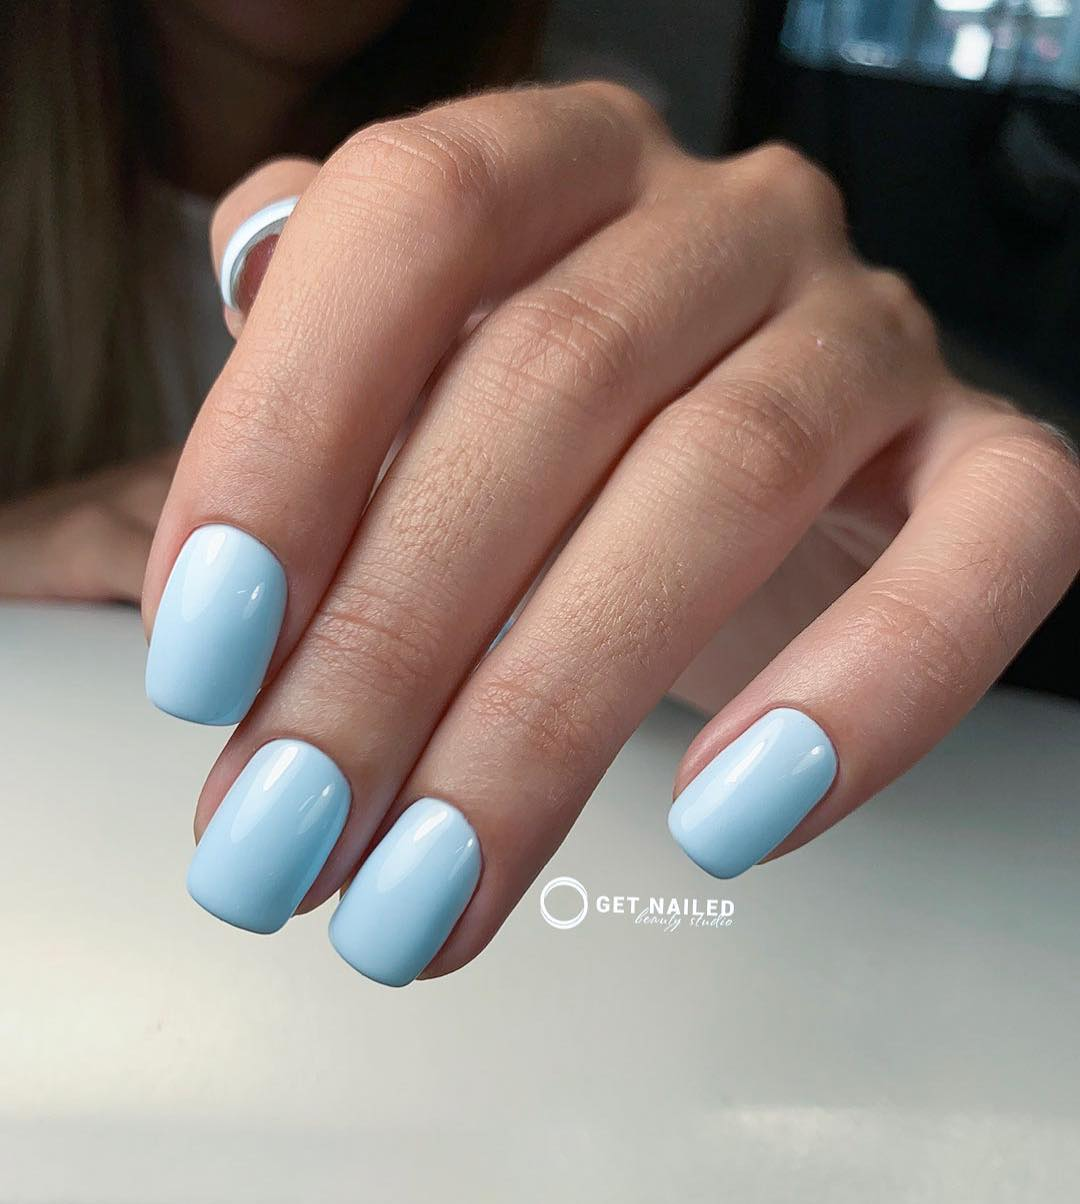 Pastel blue Nails done by KarinaYou can book your appointment on getnailed.co, through DM, WhatsApp +34 680 576 151 or simply by leaving a comment ..luxiogel